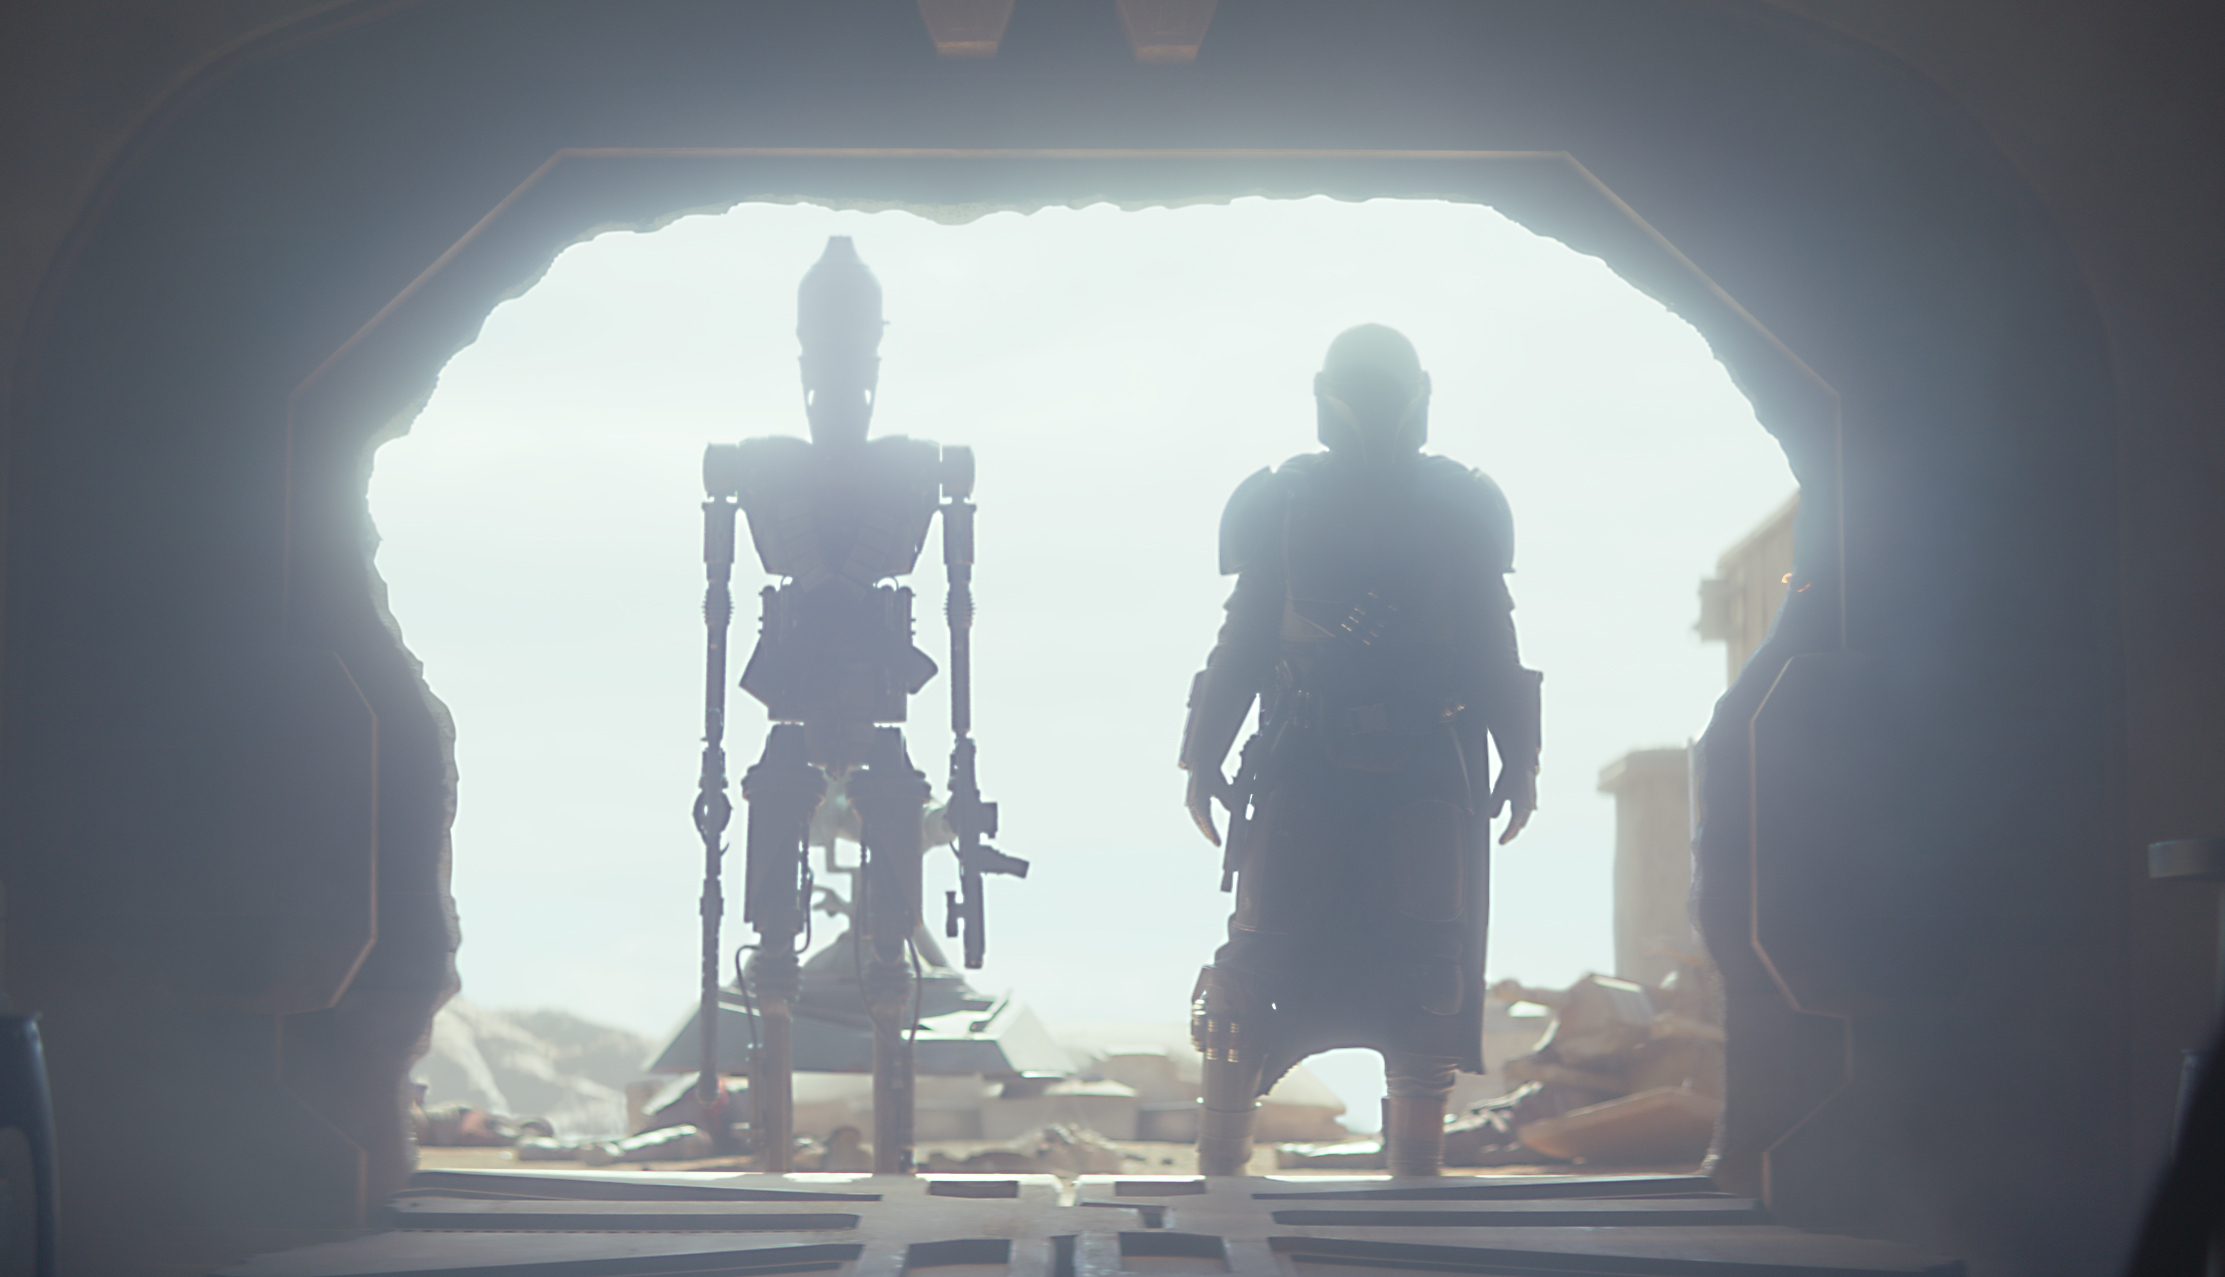 ig-11 and the mandolorian enter a sealed room with the sun at their backs